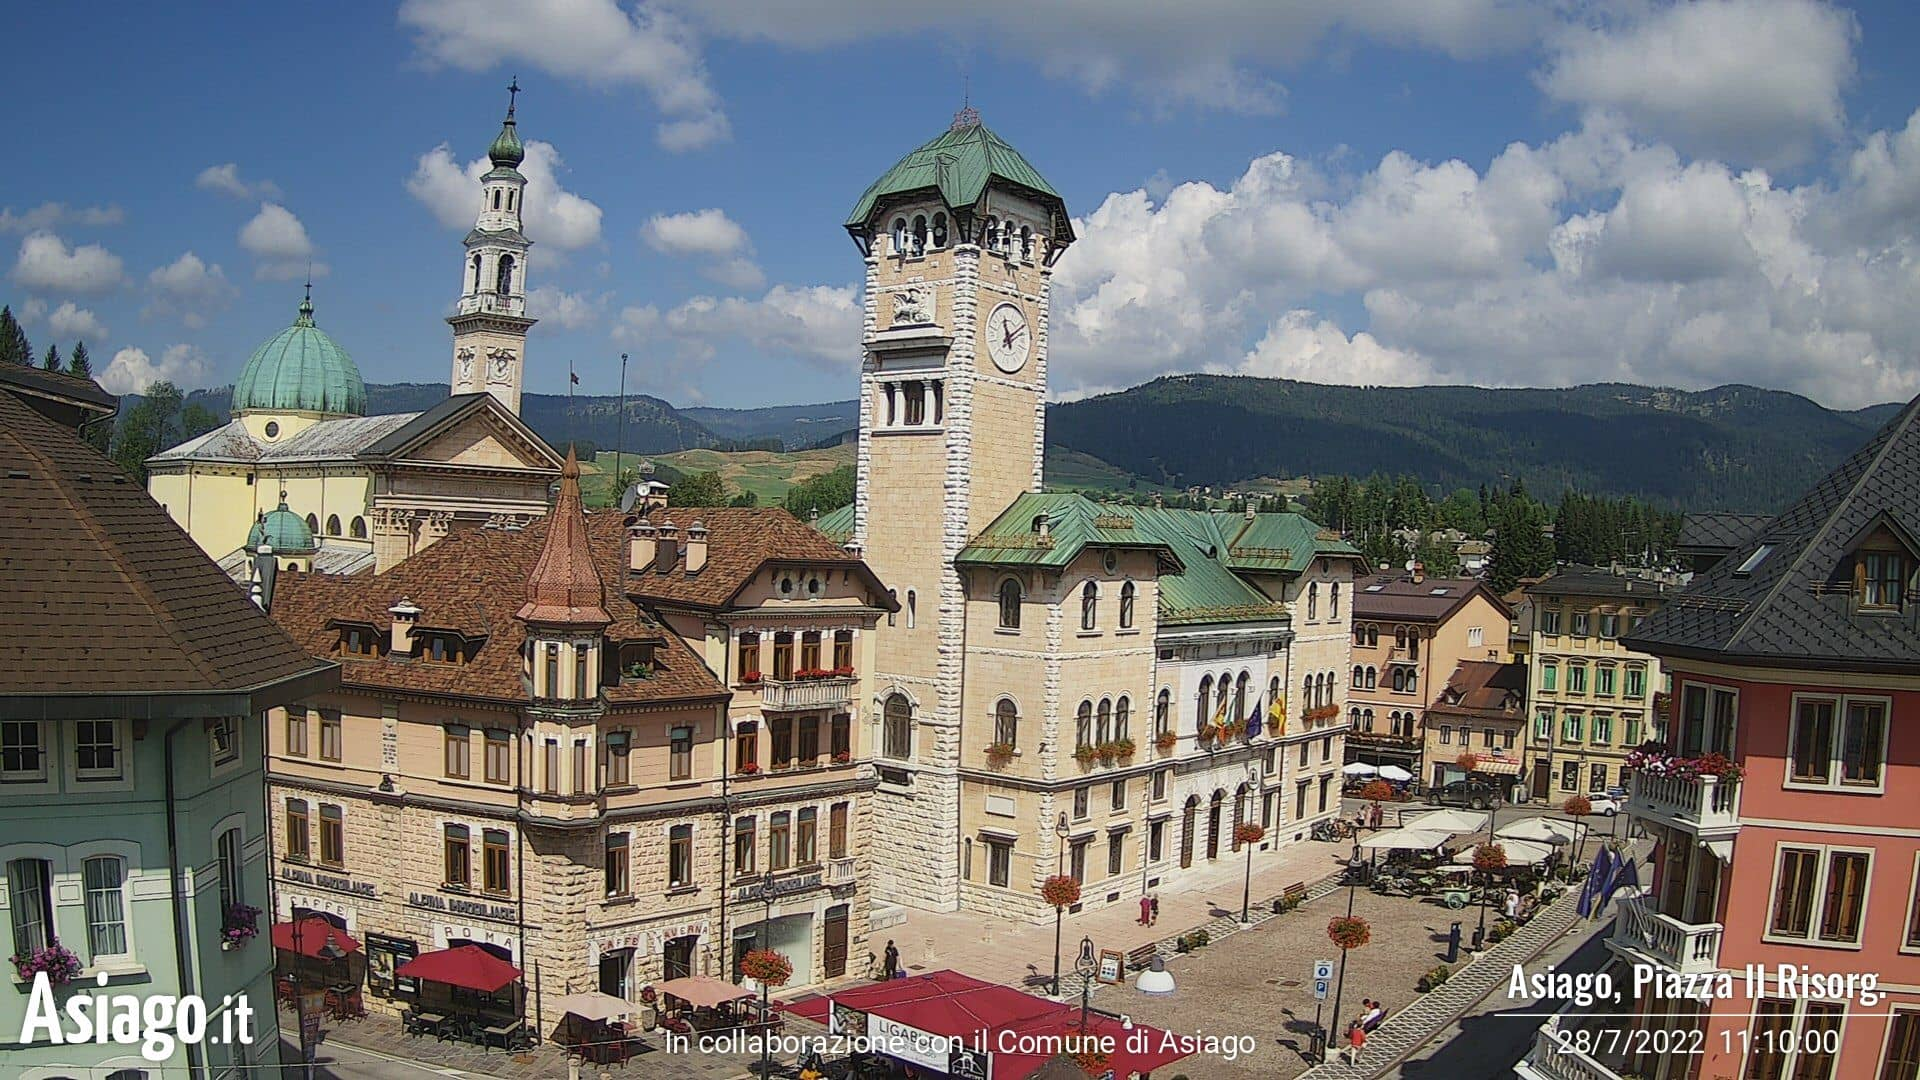 Webcam Asiago, Piazza II Risorgimento - Asiago.it